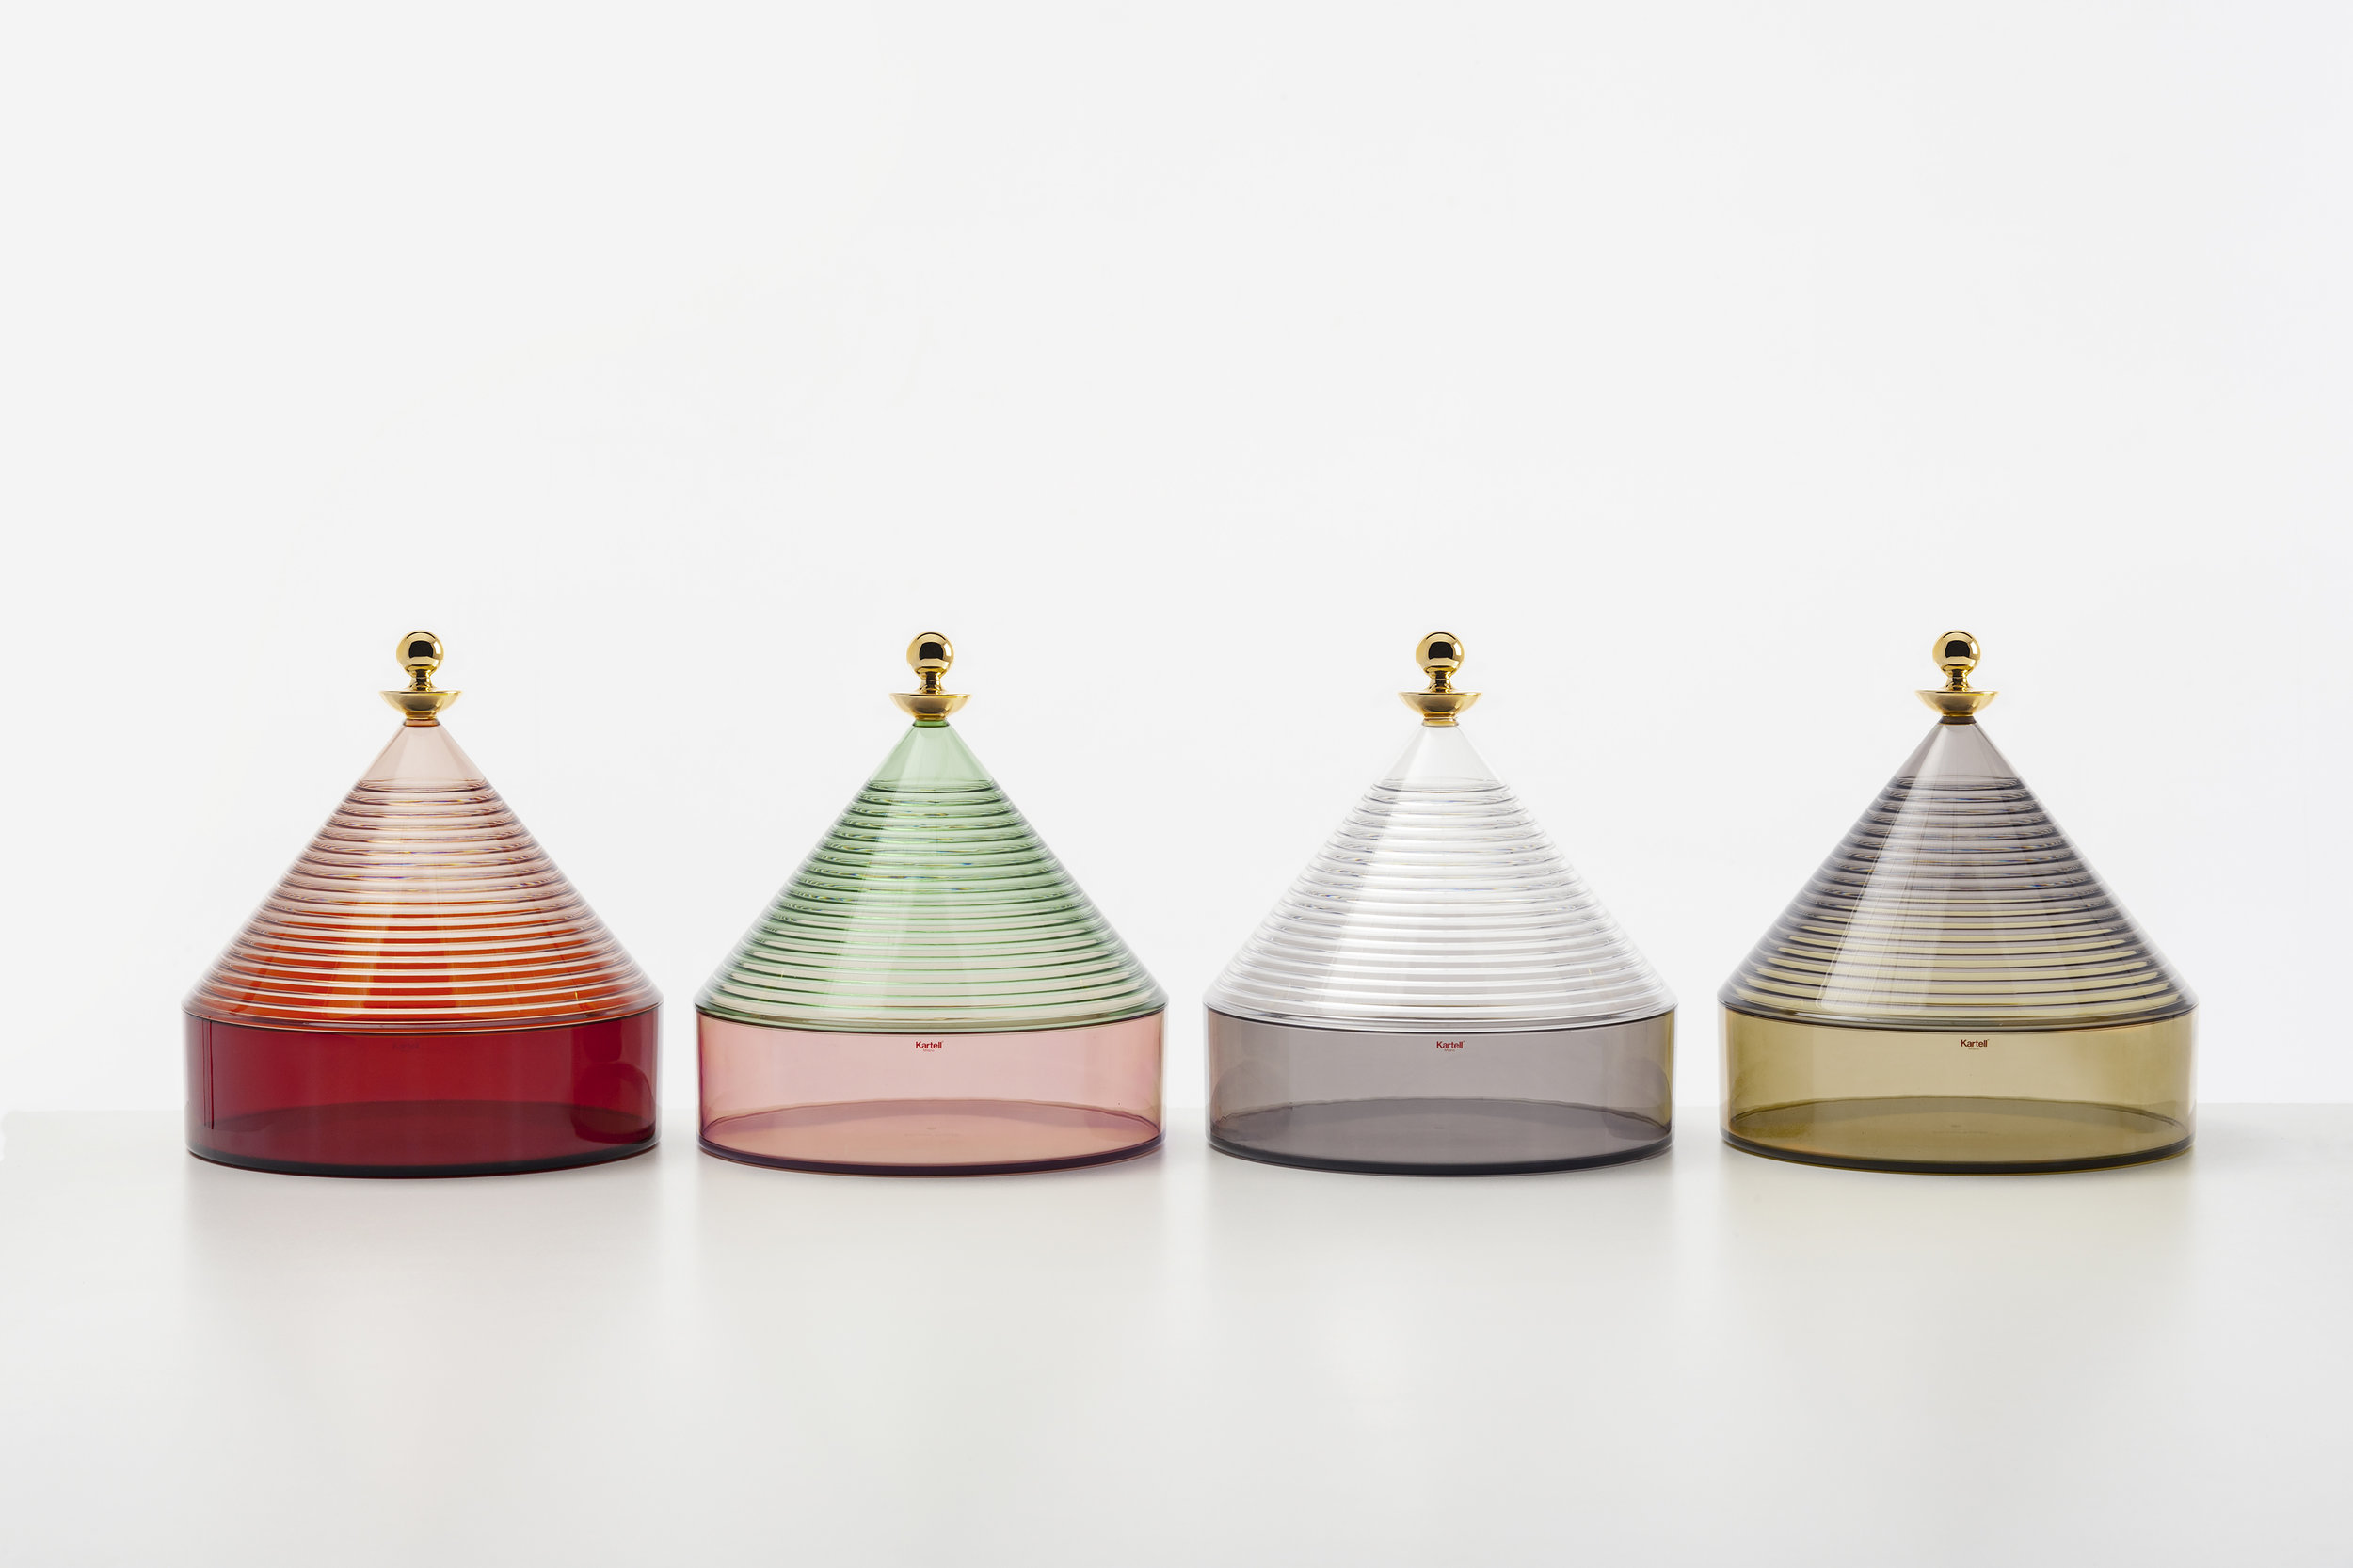 The Trulli containers designed by Fabio Novembre for  Kartell . Photo © Kartell.